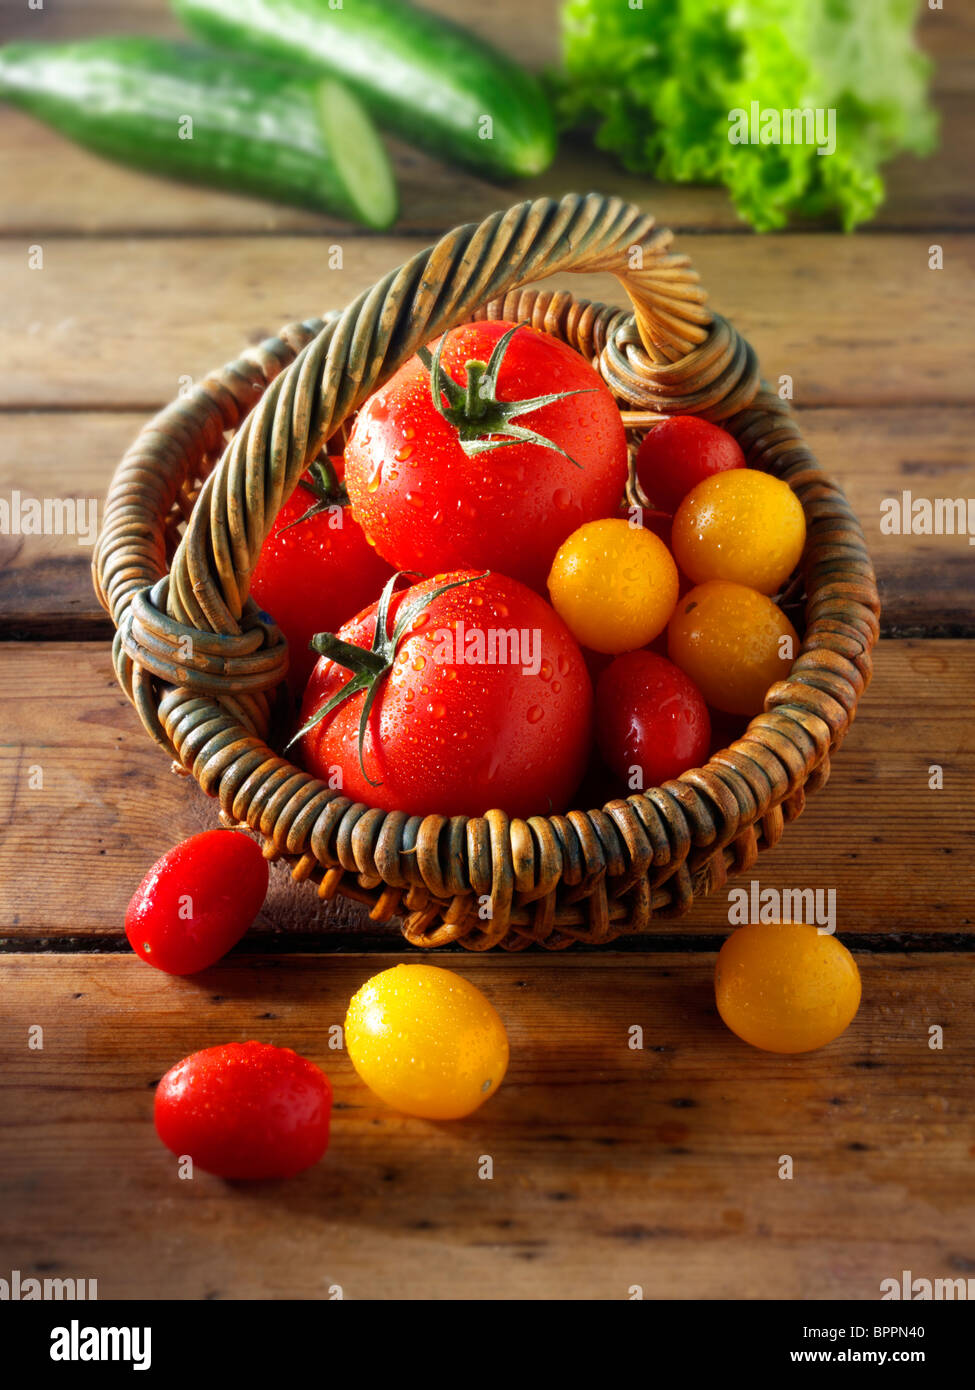 Mixed tomatoes photos, pictures & images Stock Photo